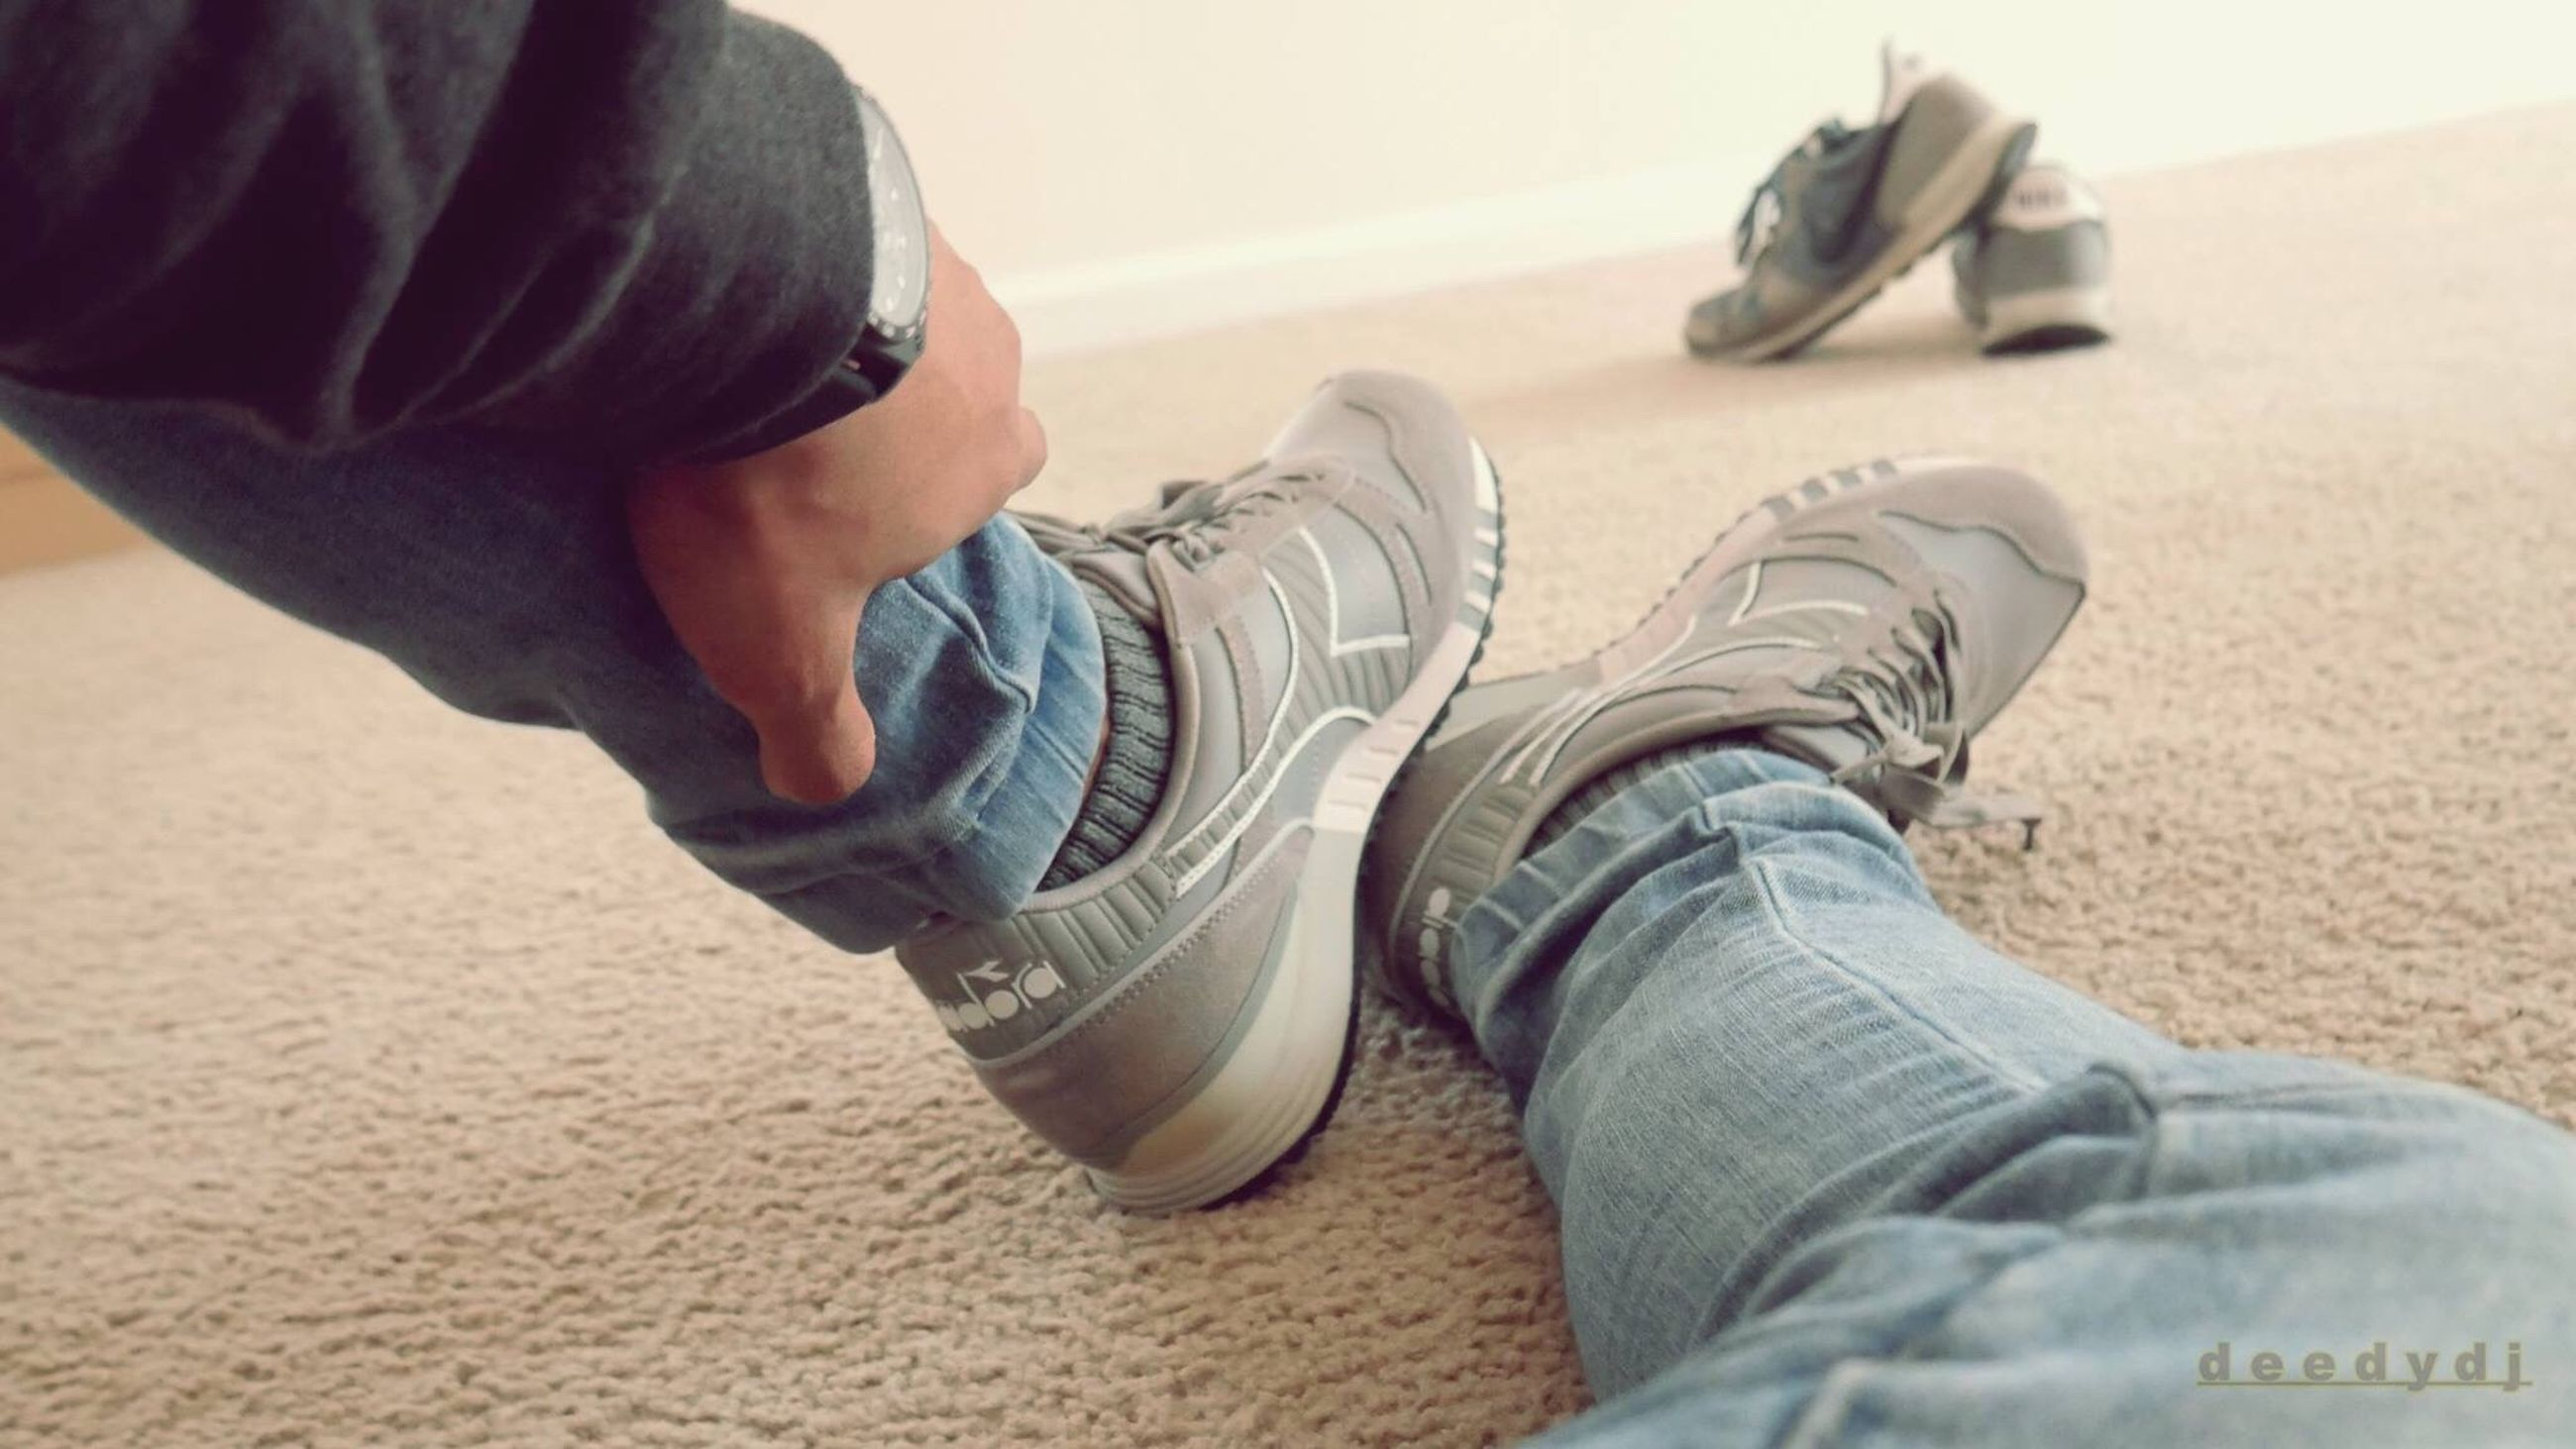 shoe, human leg, low section, human body part, jeans, human foot, casual clothing, lifestyles, human limb, limb, one person, rolled up pants, leisure activity, close-up, men, sock, canvas shoe, women, day, people, flip-flop, adult, indoors, adults only